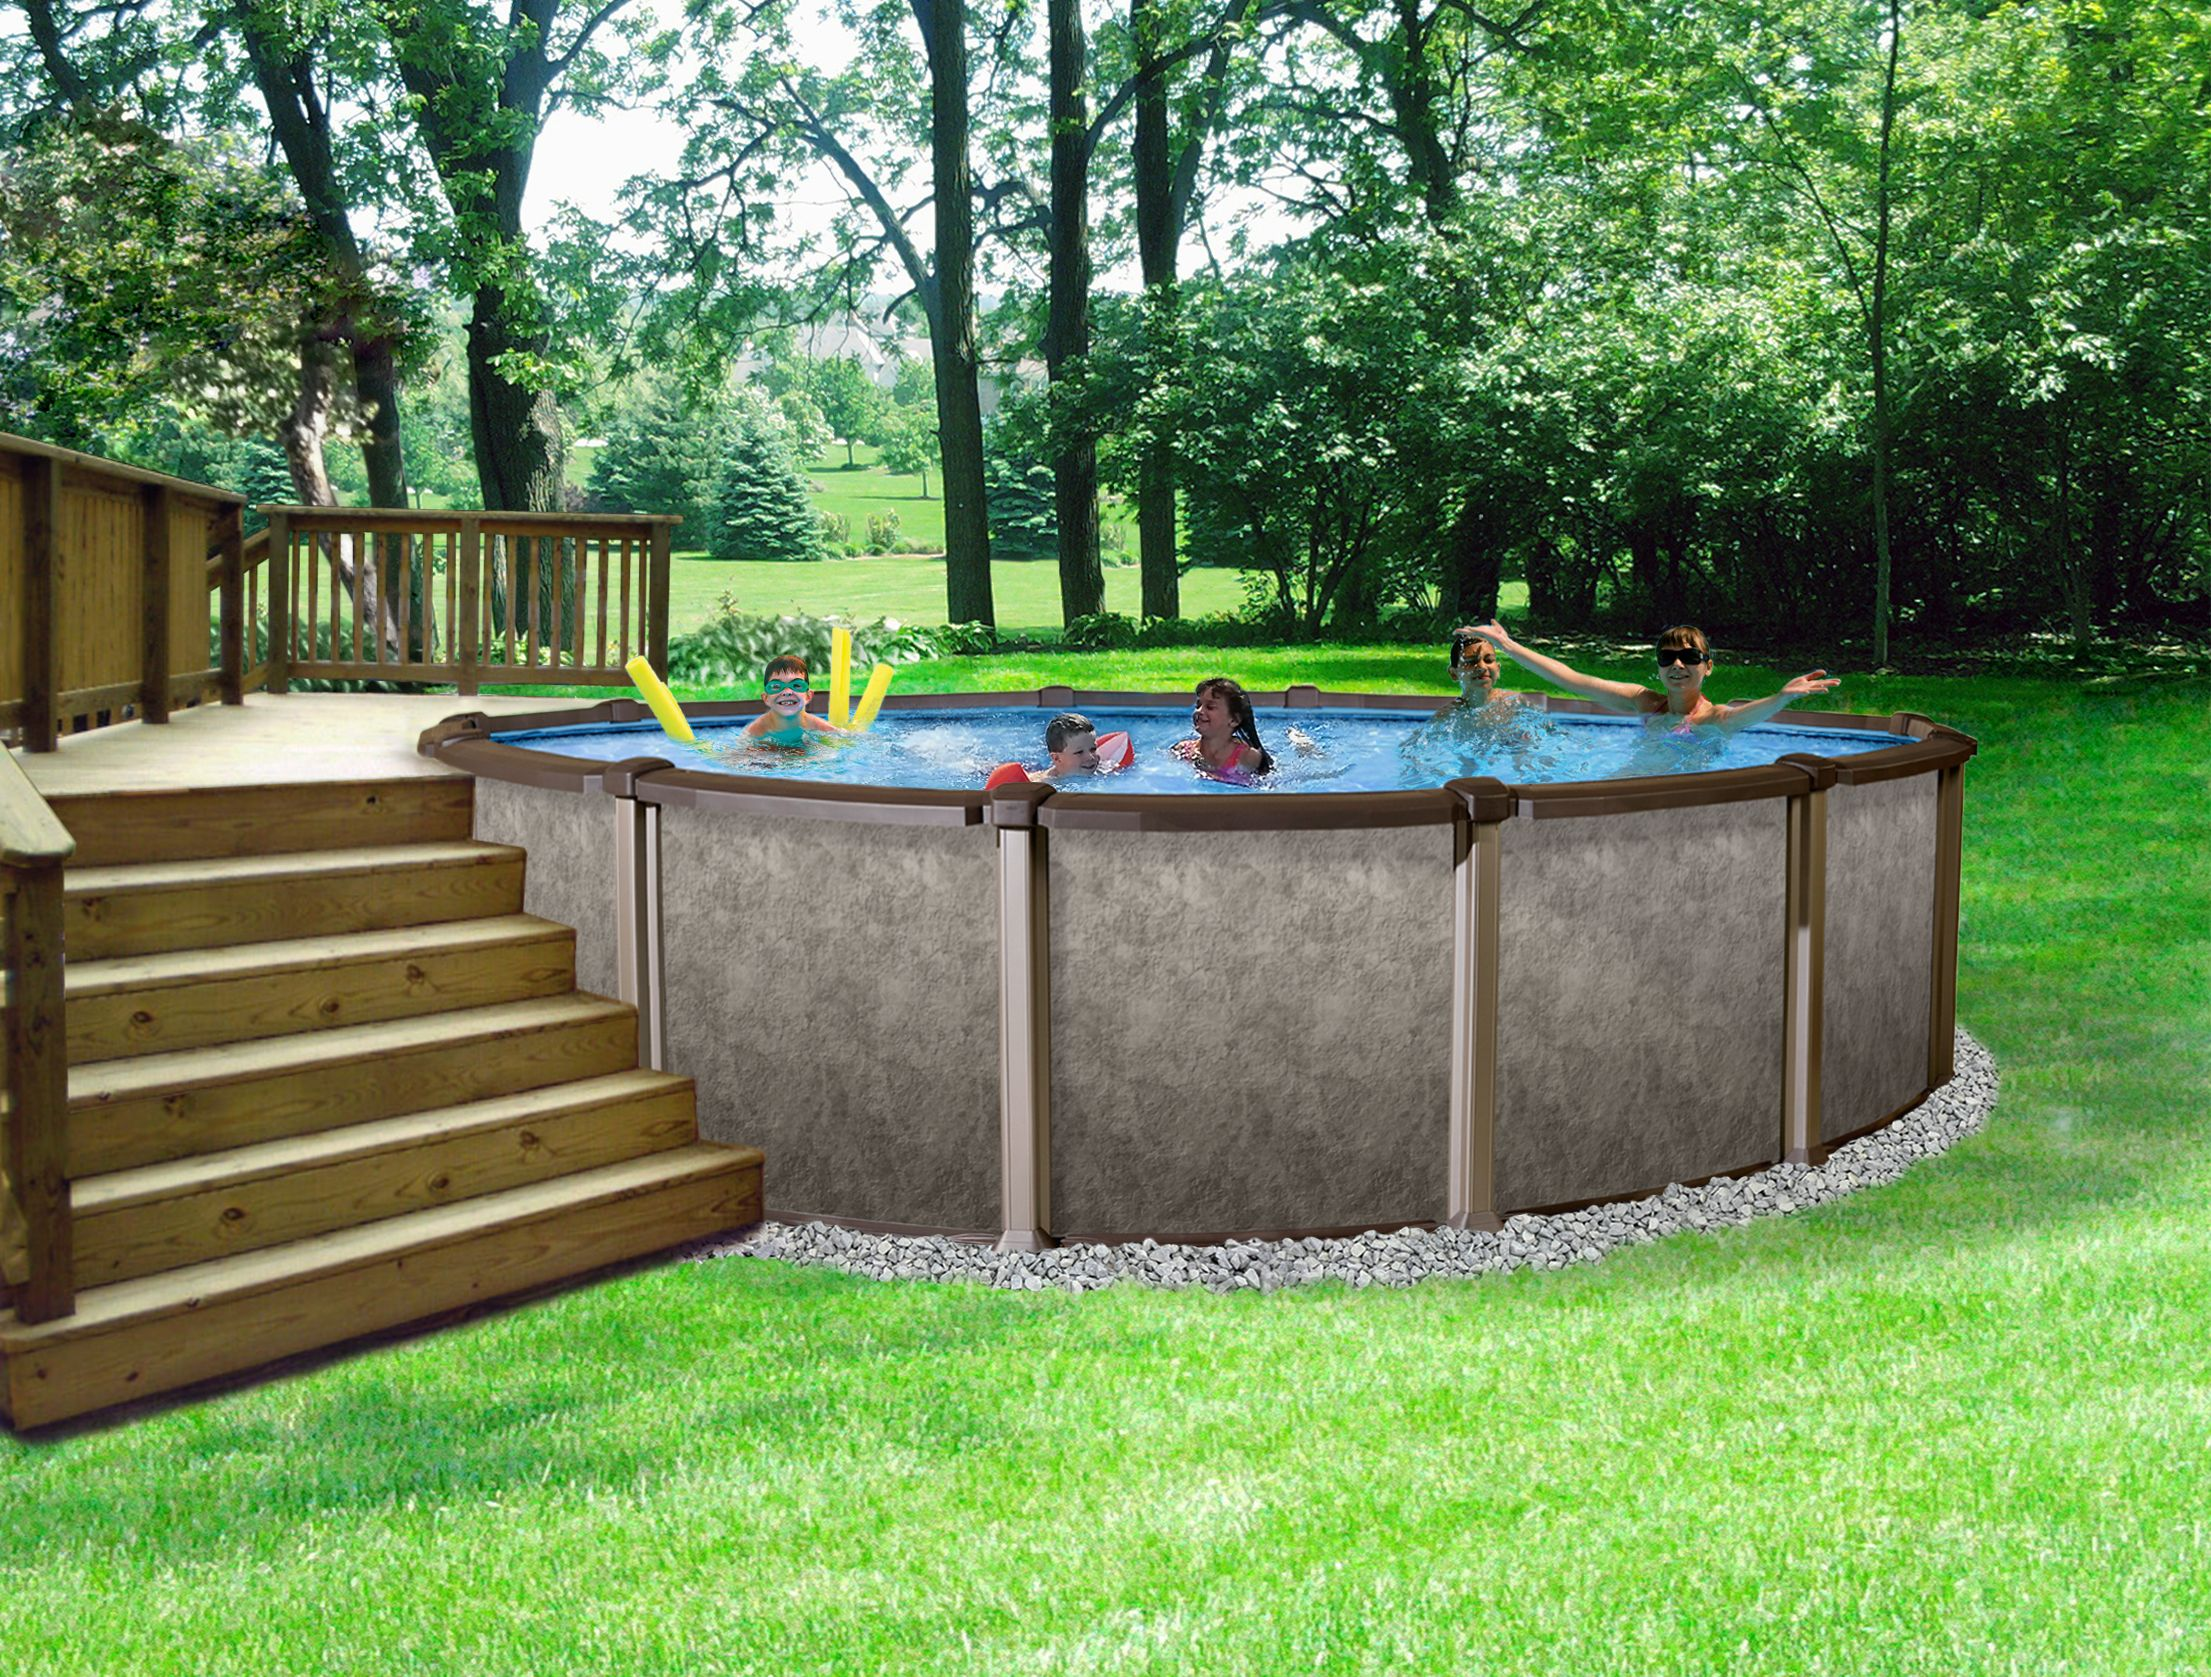 Best 25+ Oval above ground pools ideas on Pinterest | Pool decks ...